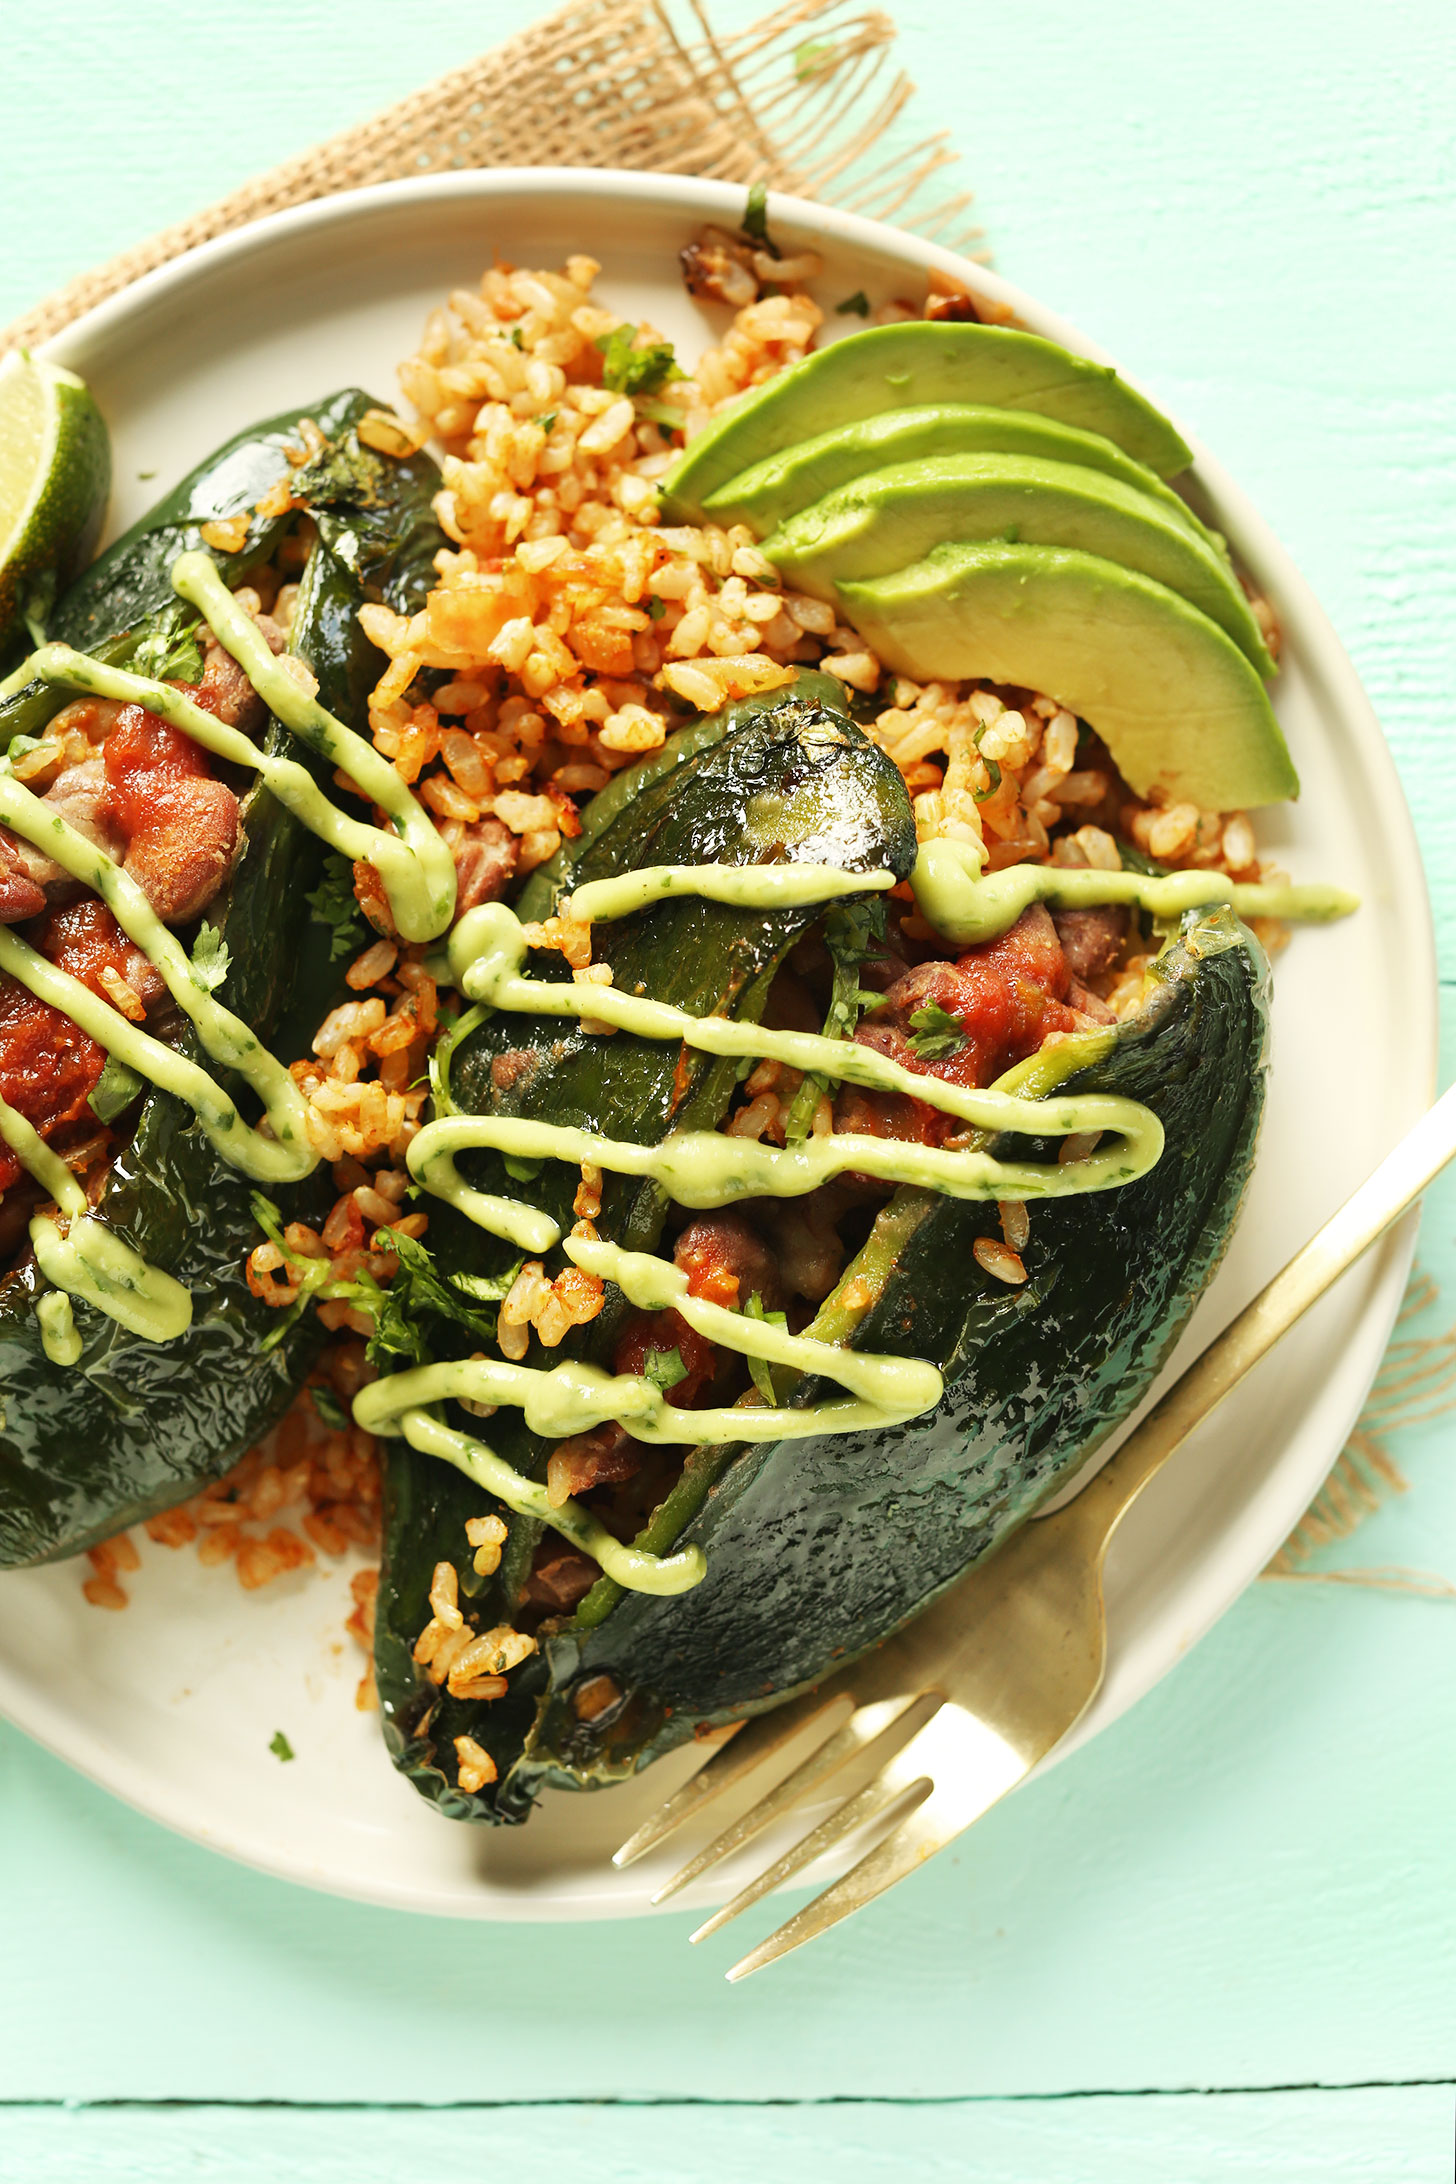 Vegan stuffed poblano peppers minimalist baker recipes plant based dinner of vegan stuffed poblano peppers on a plate forumfinder Images